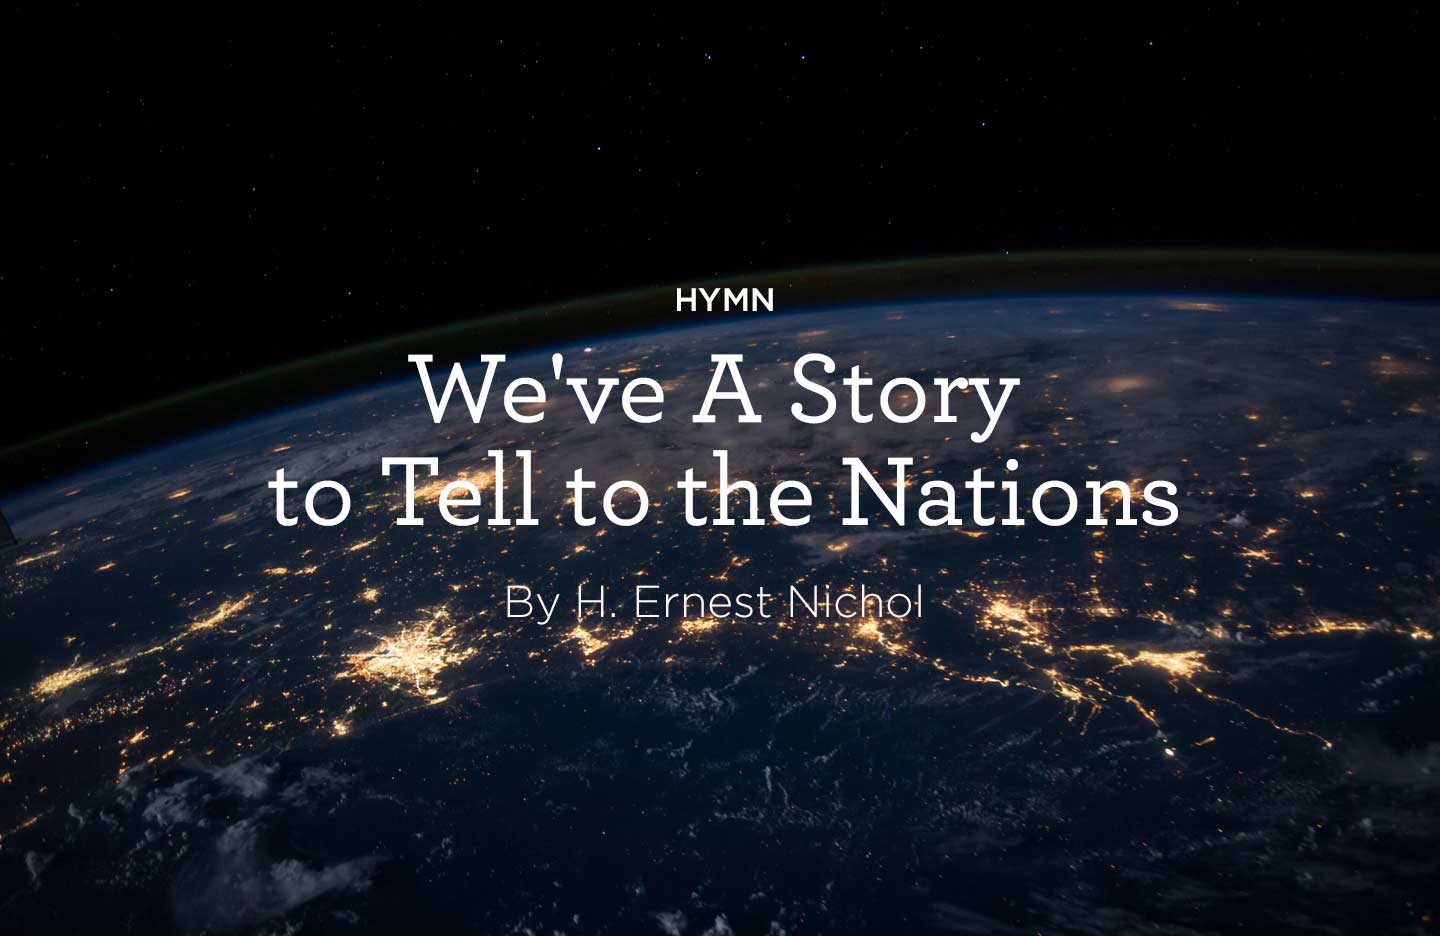 Weve A Story to Tell to the Nations